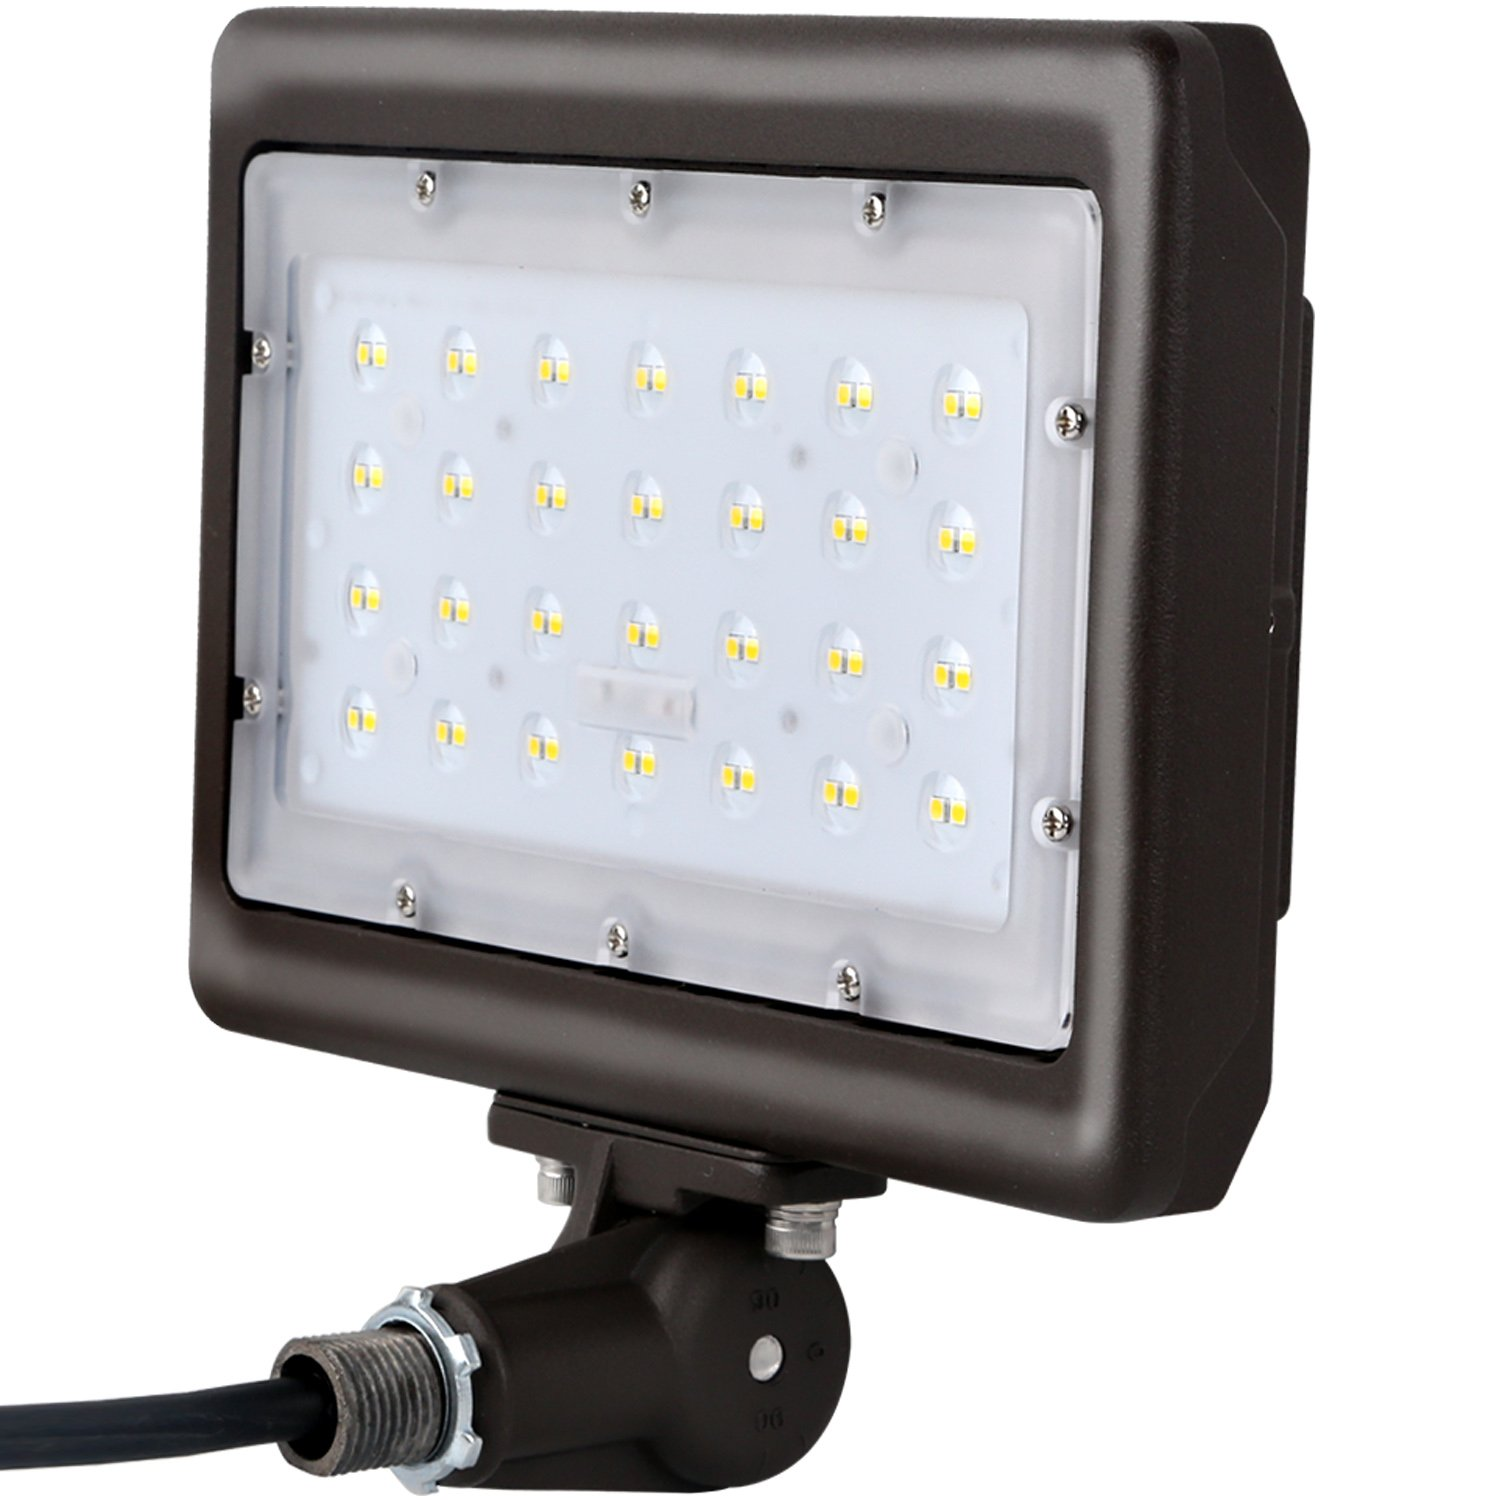 Hykolity 50W LED Flood Light with Knuckle Mount, 6000lm 5000K Security Floodlight Fixture for Outdoor Decoration, Wall grazing/Wall Washing Signage Light [250W Halogen Equivalent] DLC Qualified